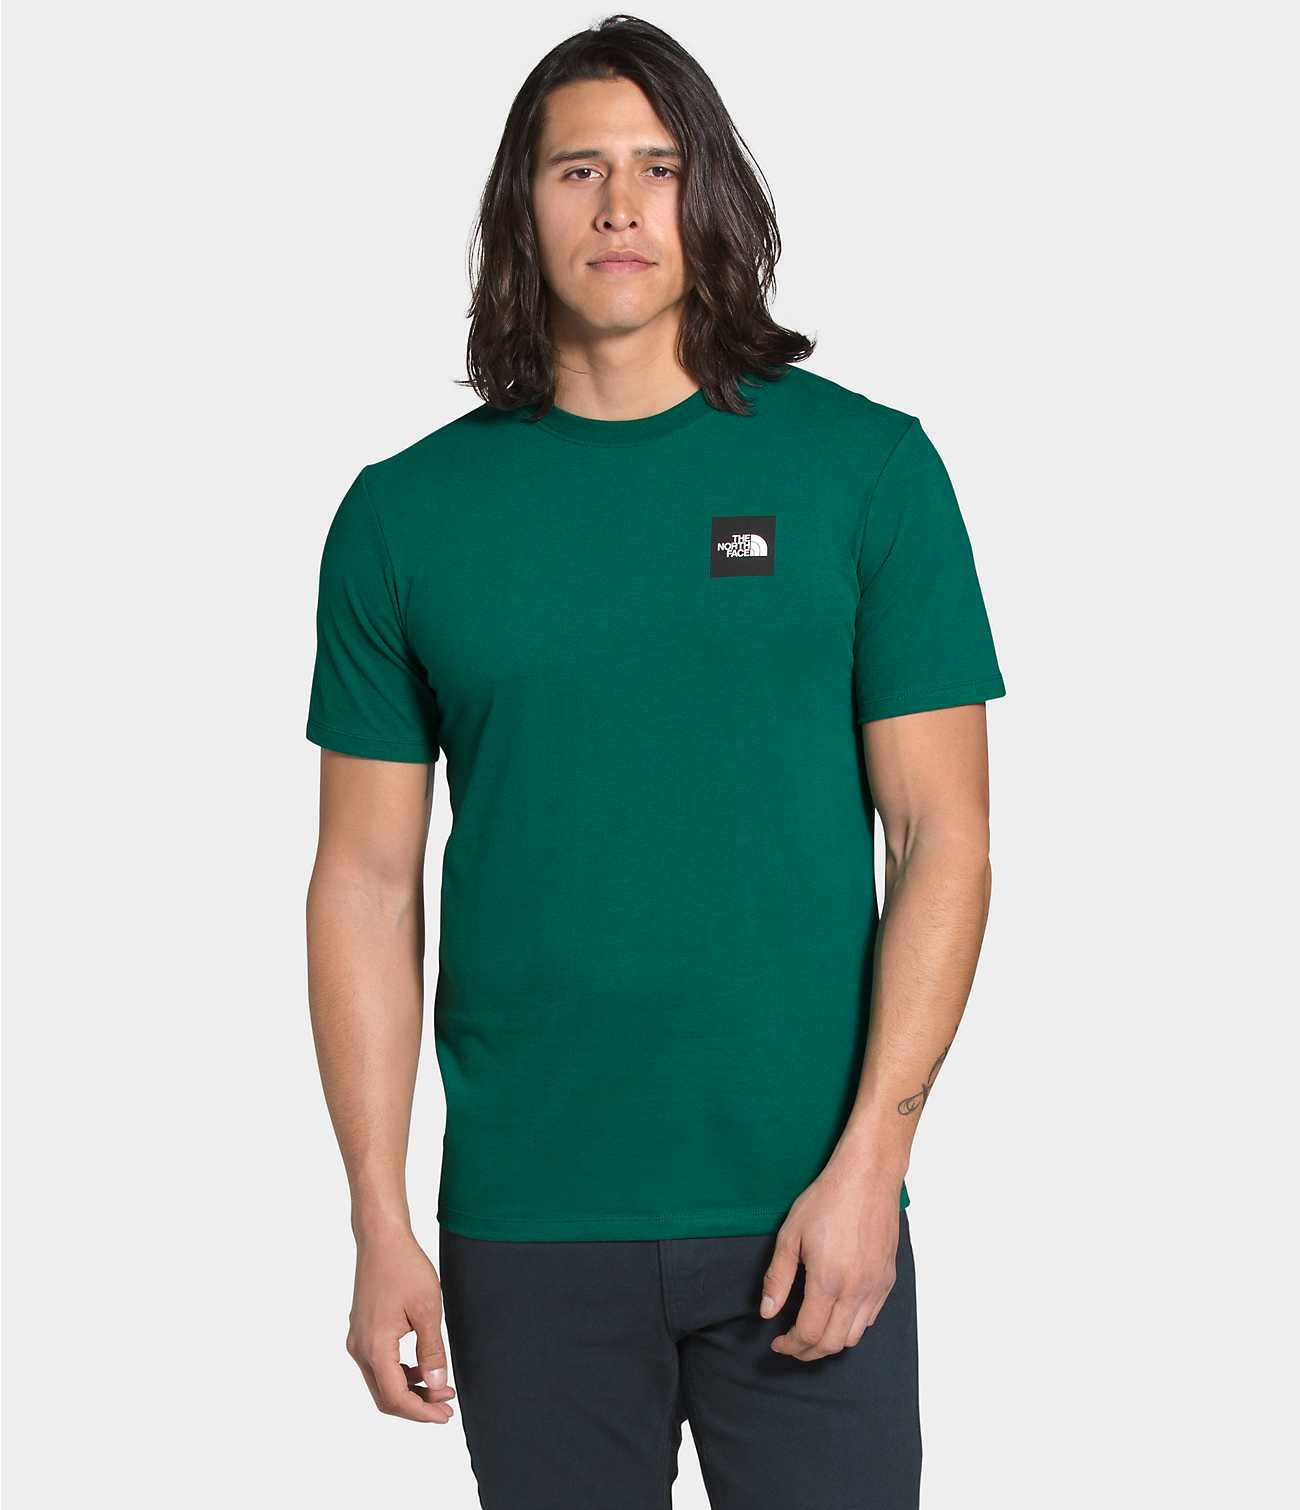 THE NORTH FACE M'S T-SHIRTS SHORT SLEEVE BOX TEE